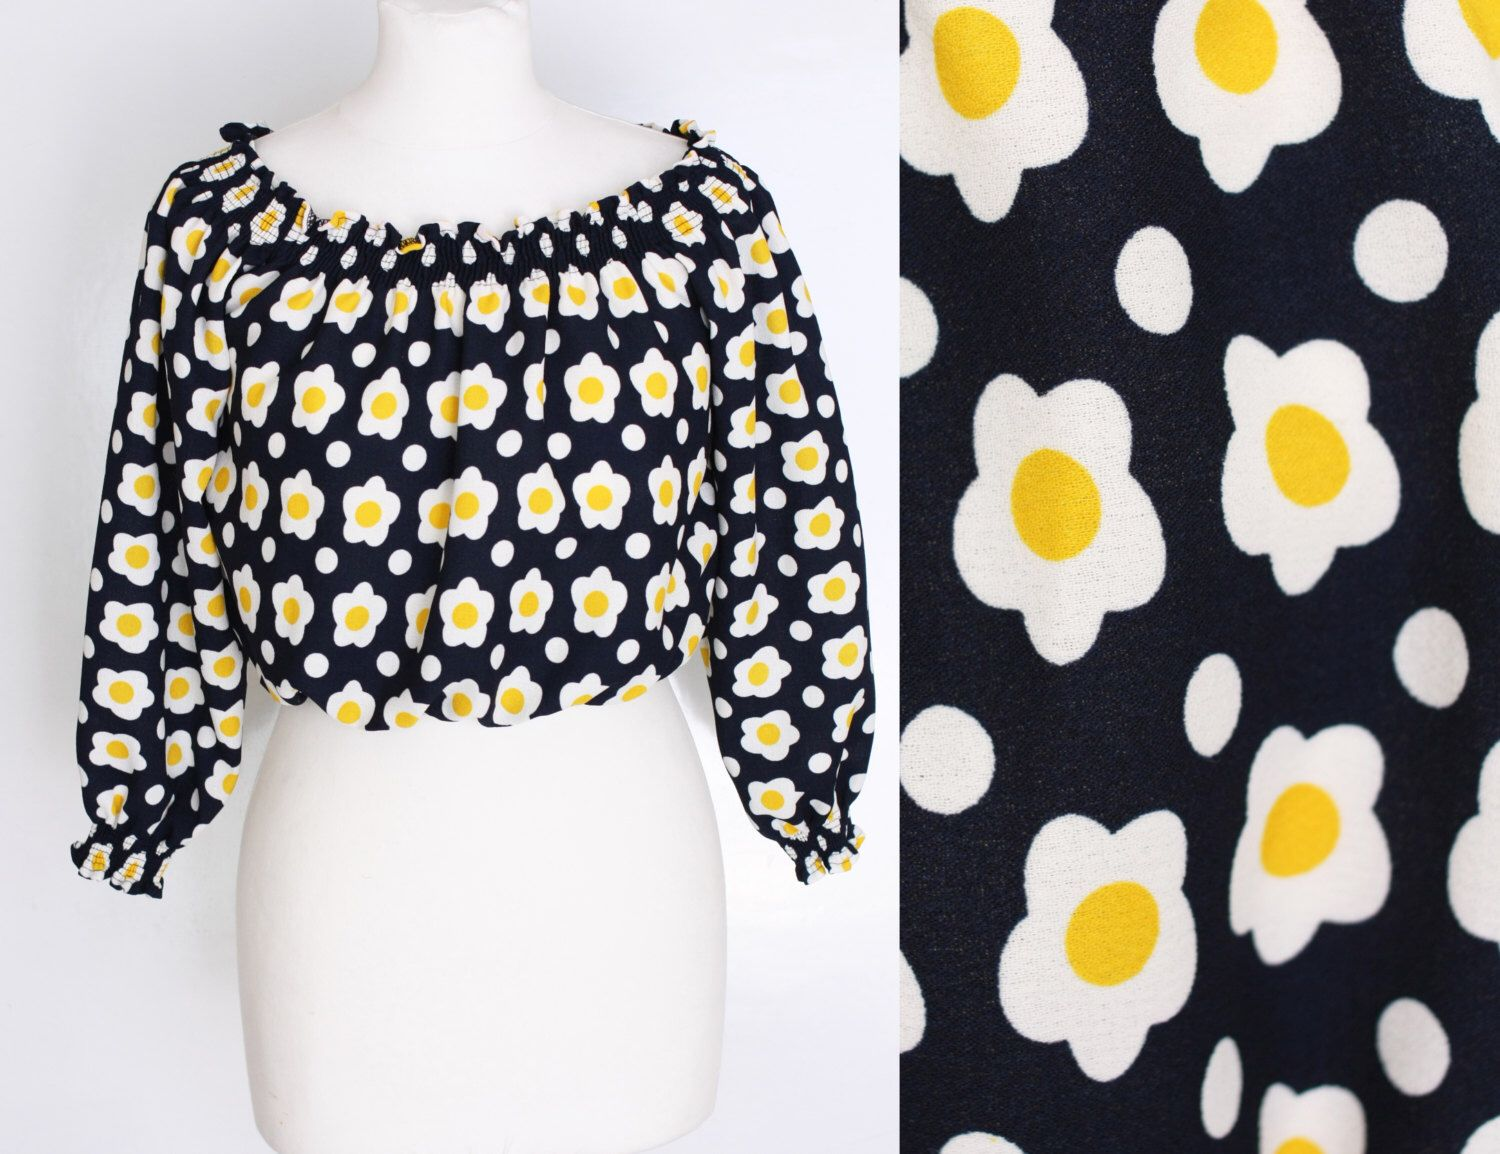 ea8755d49a25cb vintage 70s off shoulder crop top puffy sleeve daisy flower print blouse  yellow white black polkadot